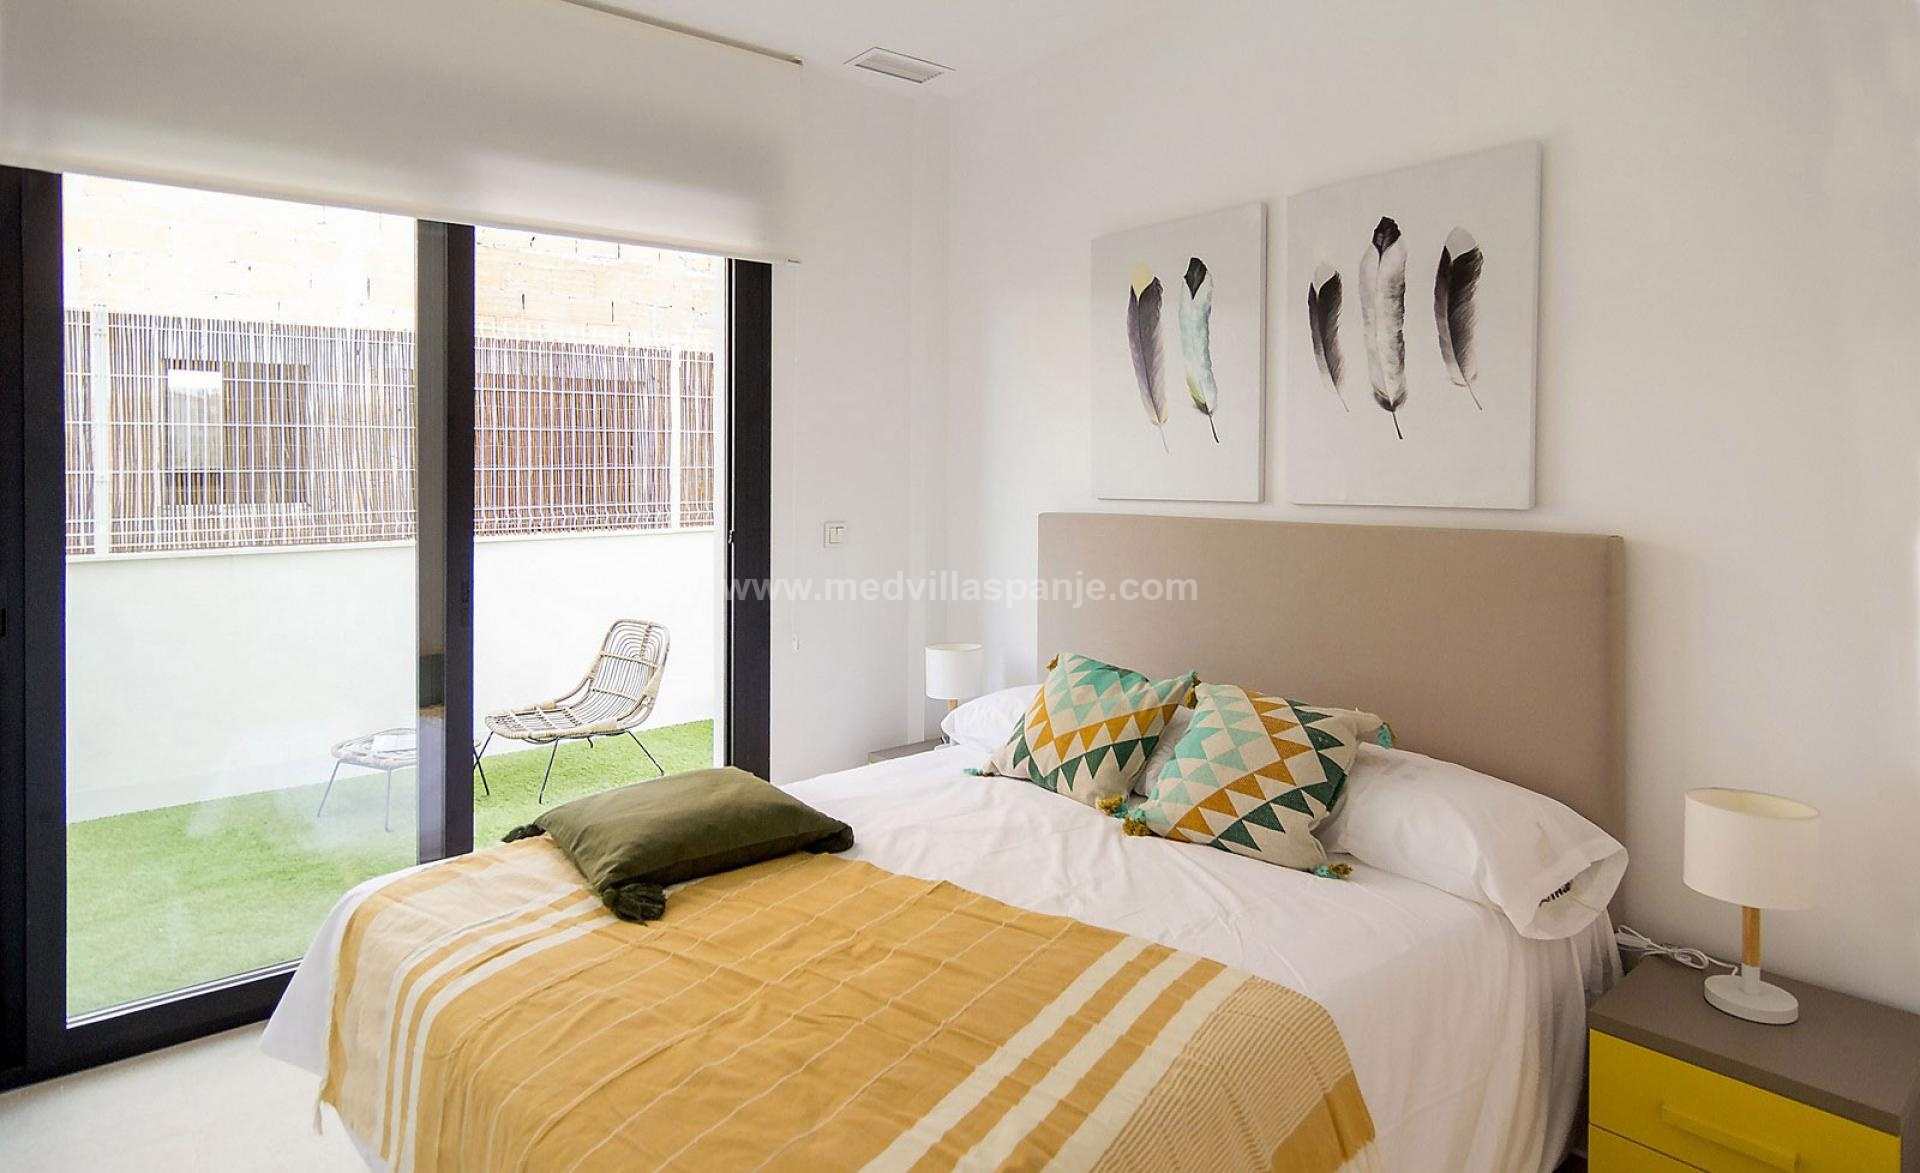 Golden Sail, Detached luxury Villa in San Juan de los Terreros in Medvilla Spanje